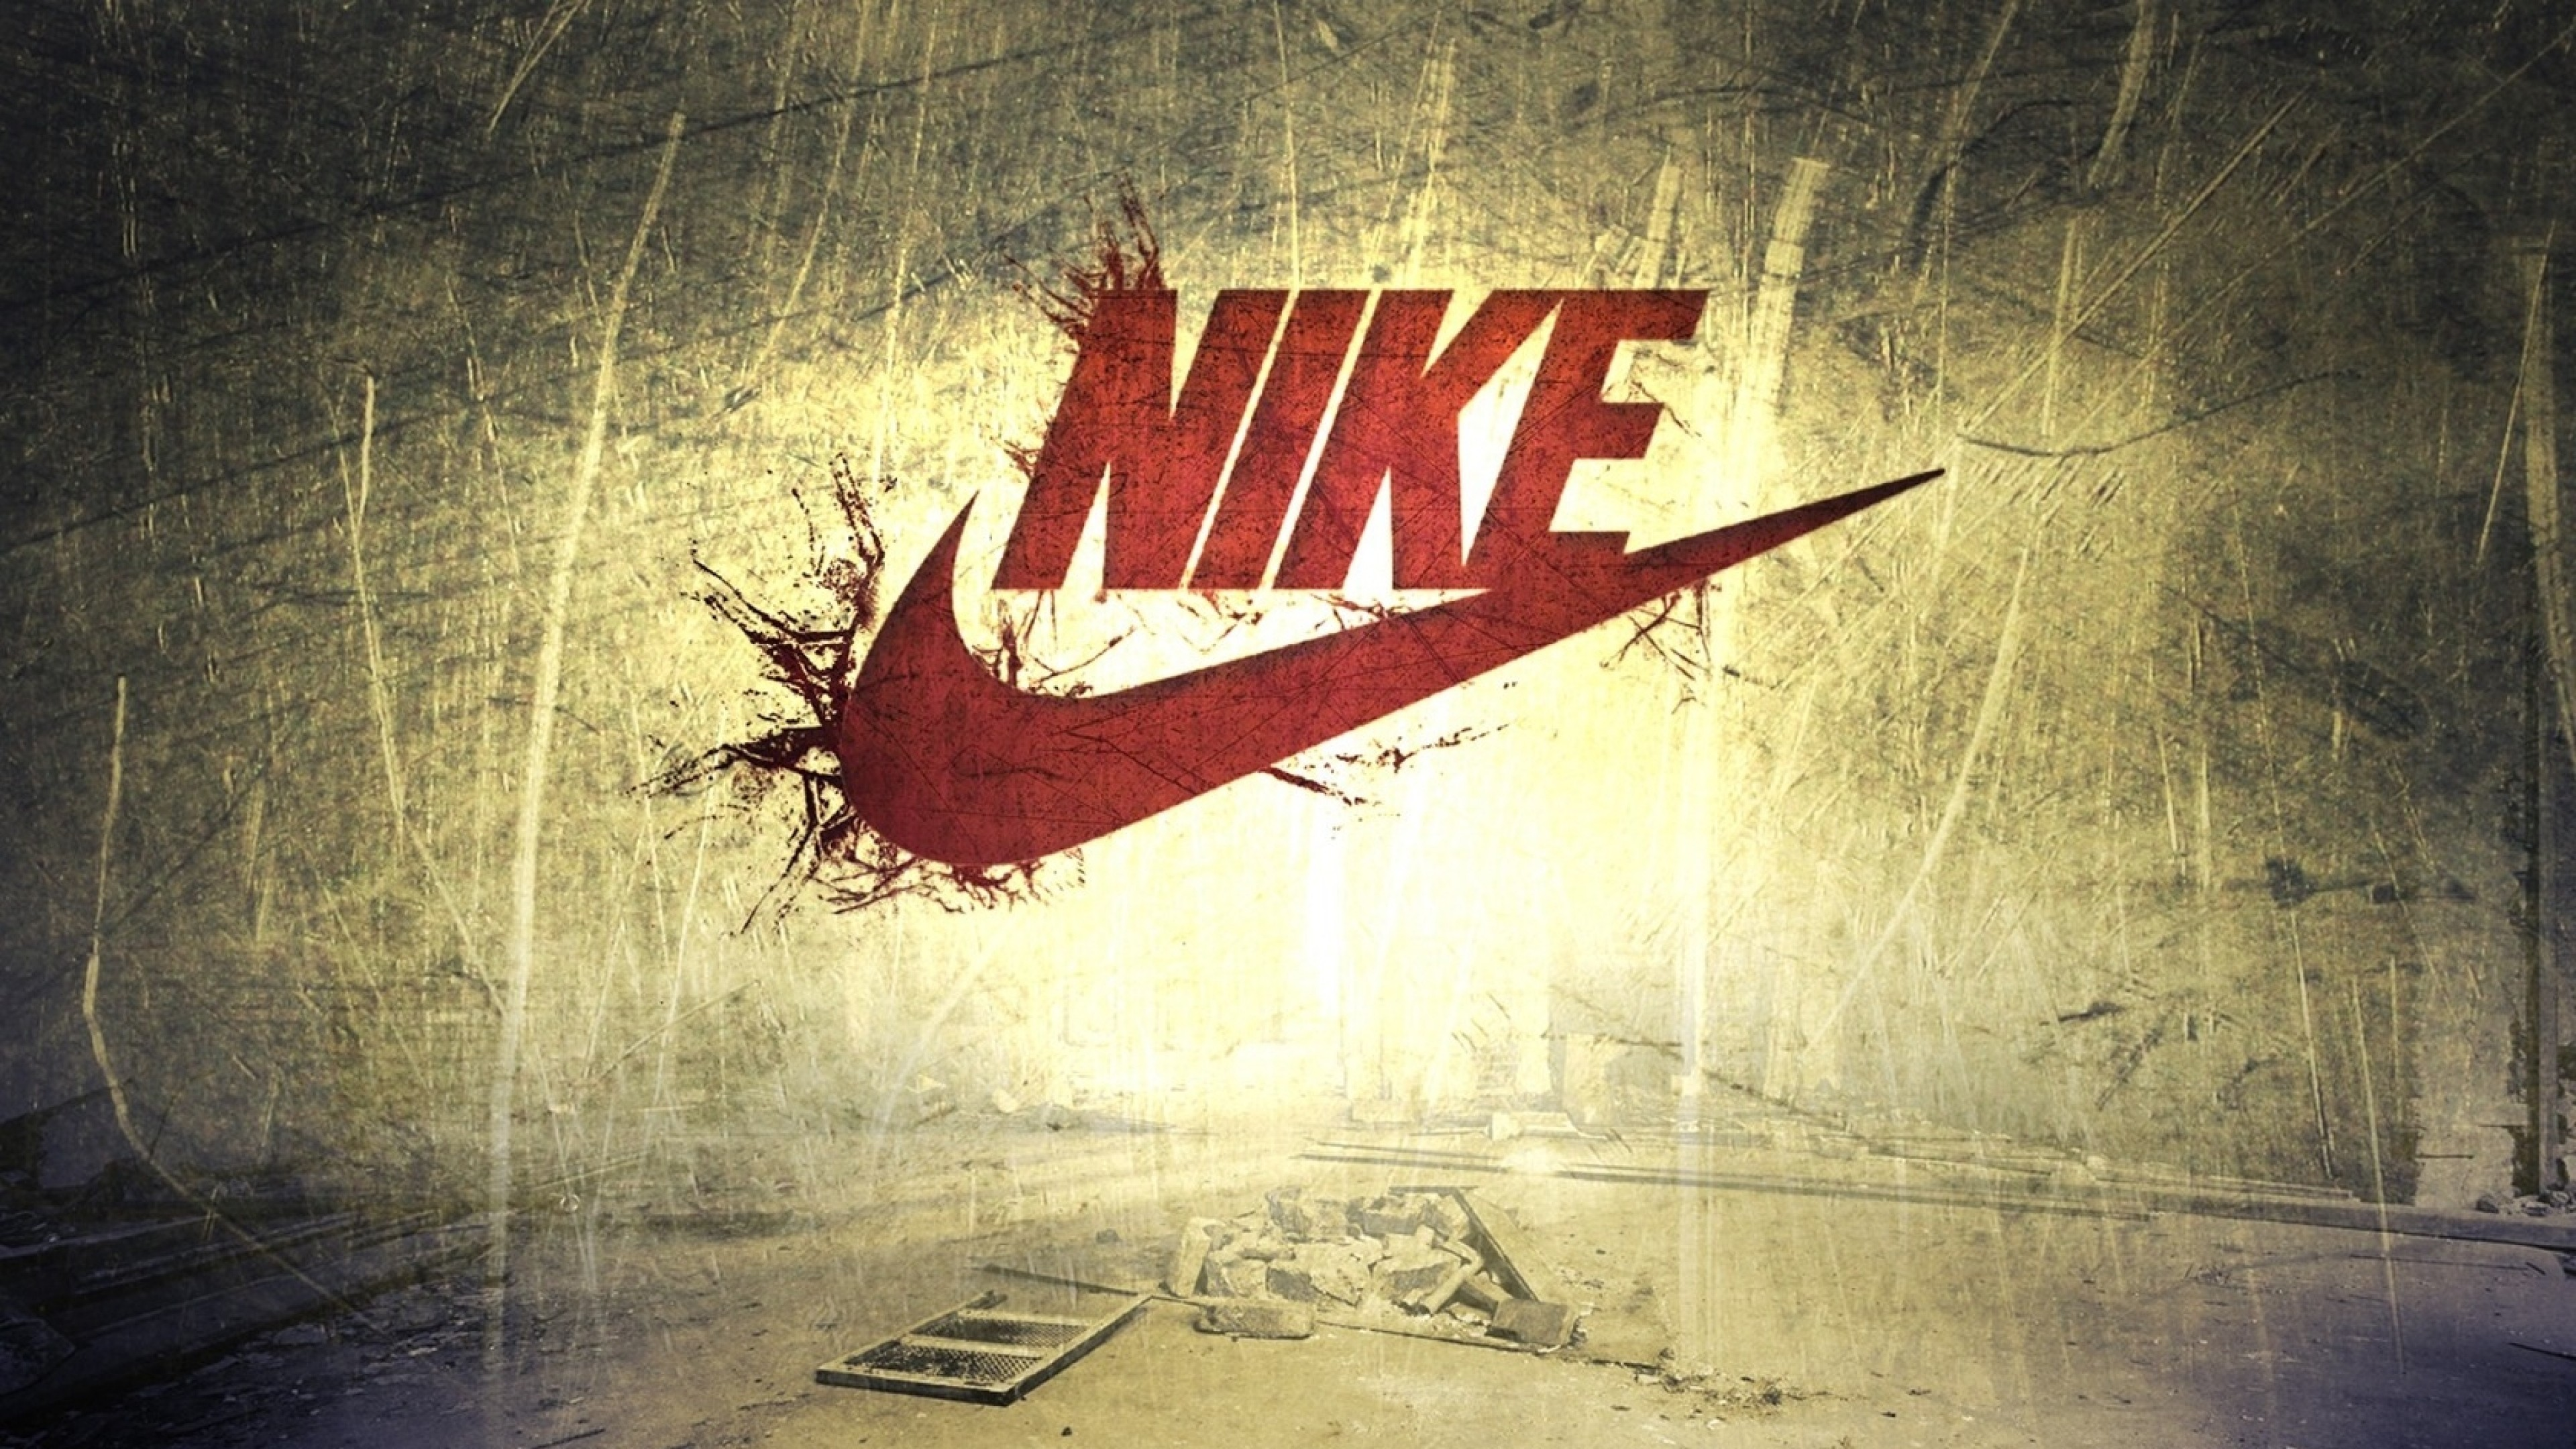 Nike Wallpaper For Iphone 4 Hd Archidev